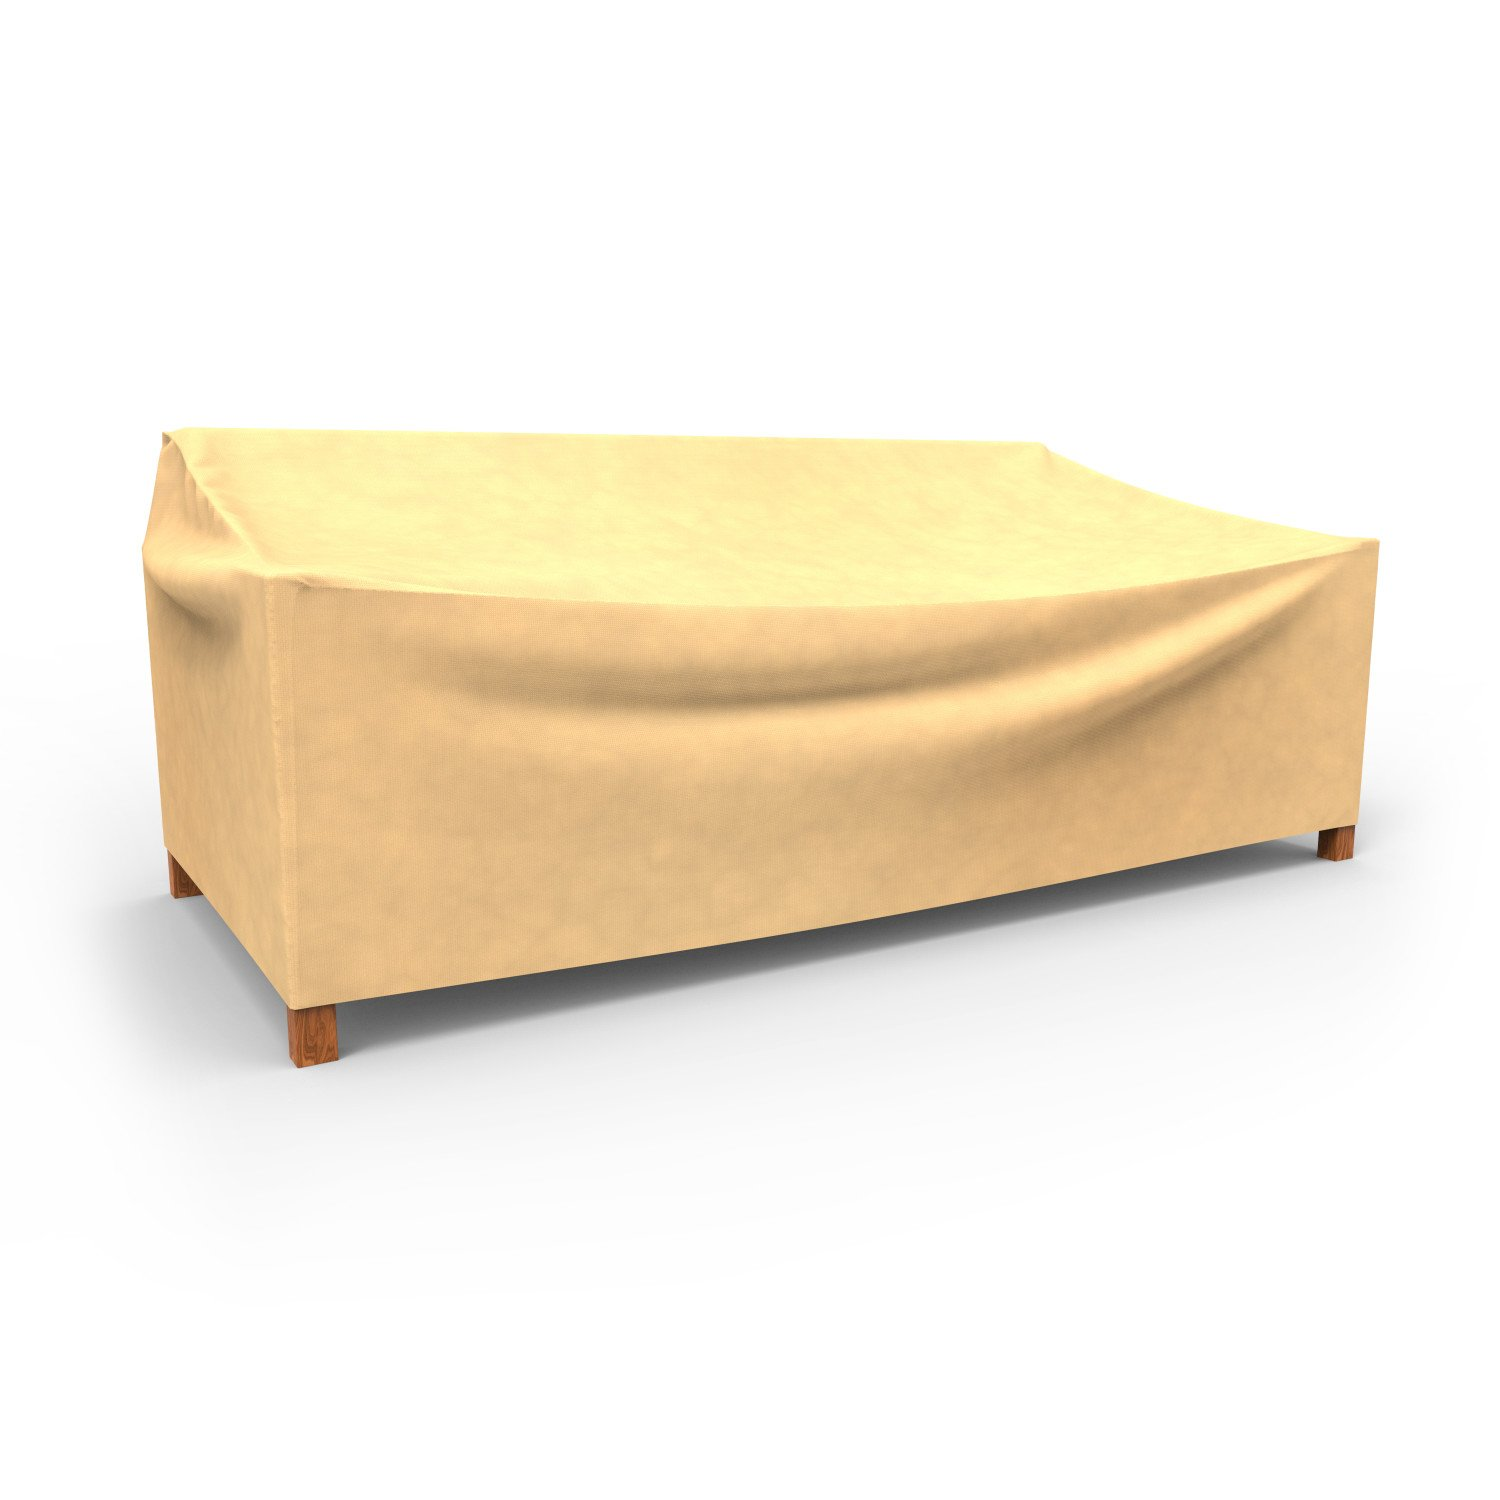 Budge All-Seasons Outdoor Patio Sofa Cover, Extra Extra Large (Tan)